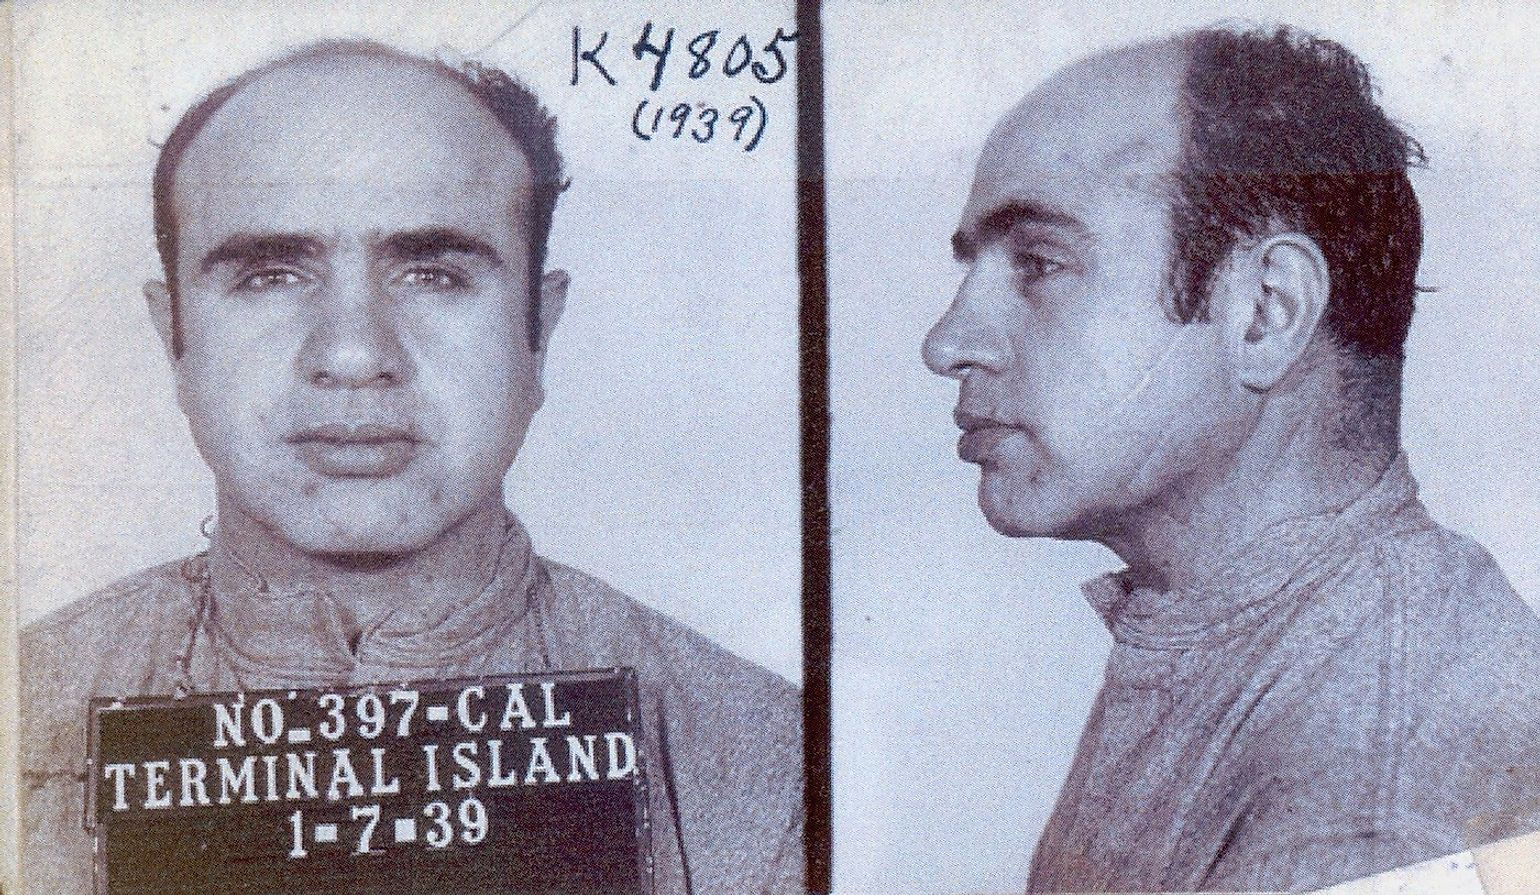 In March 1929, Capone was arrested after left a Chicago courtroom.